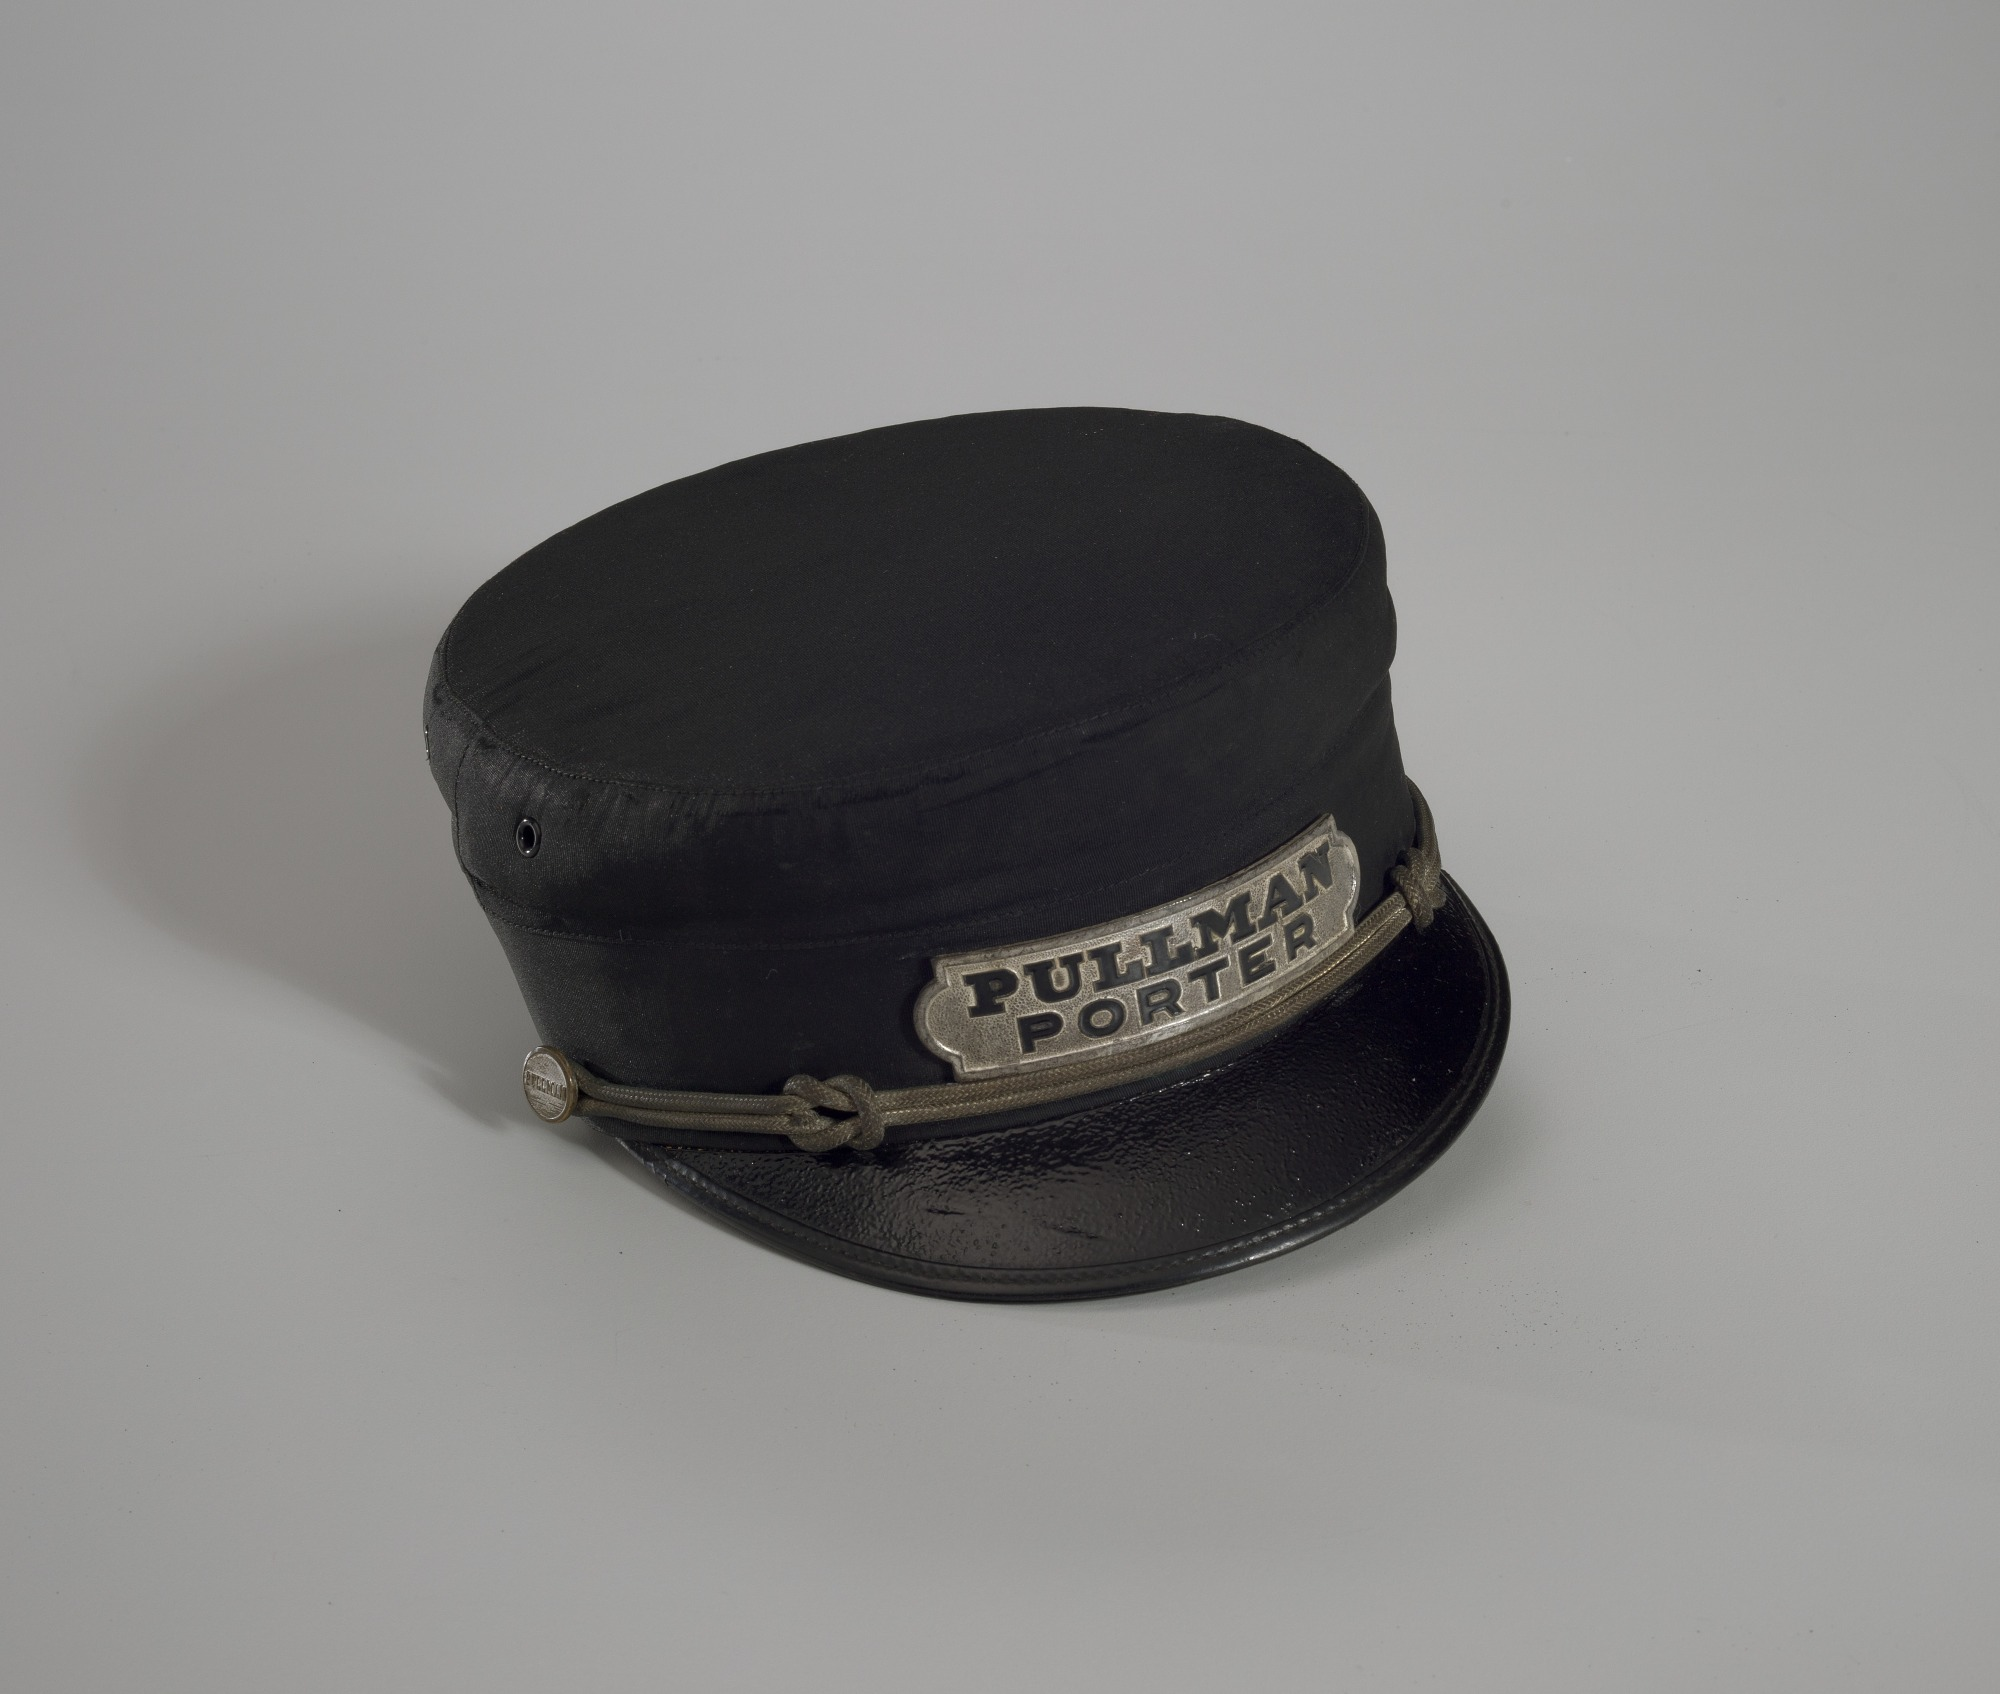 Image for Uniform cap owned by Pullman Porter Robert Thomas